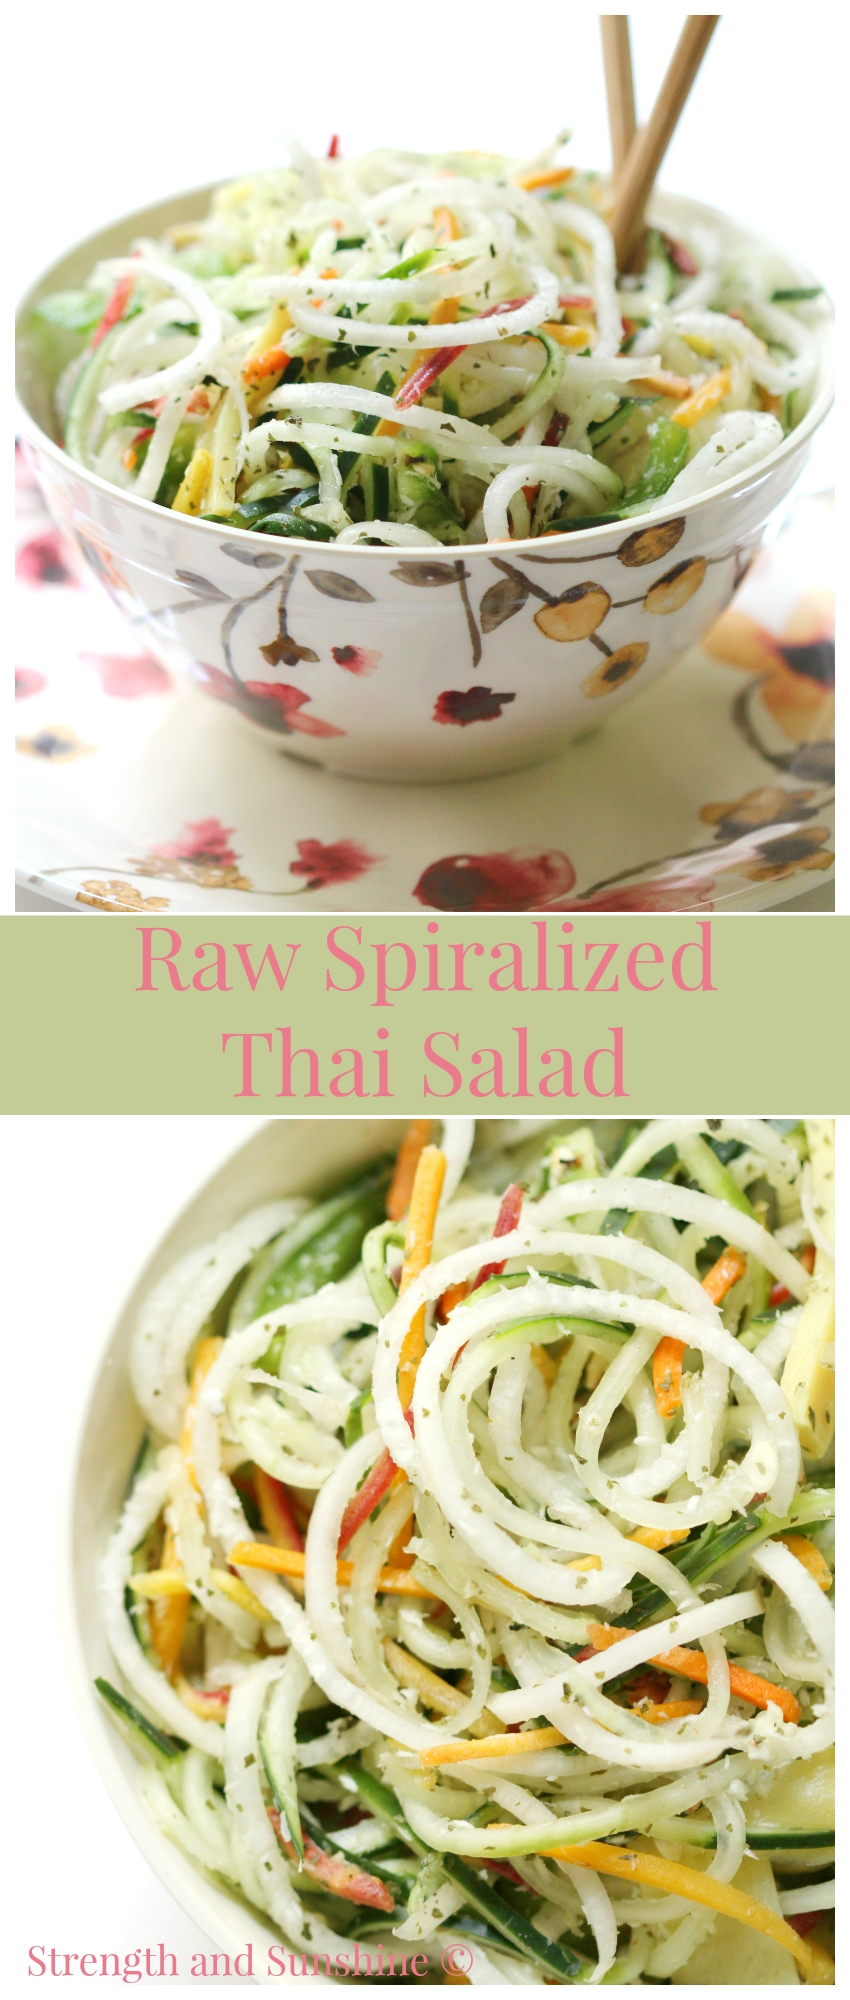 Raw Spiralized Thai Salad | Strength and Sunshine @RebeccaGF666 Who ever said veggies were boring? This Spiralized Thai Salad is all veggie, all raw, and exploding with flavor! If you aren't a veggie lover yet, you will be after tasting this gluten-free, paleo, and vegan spiralized salad recipe!